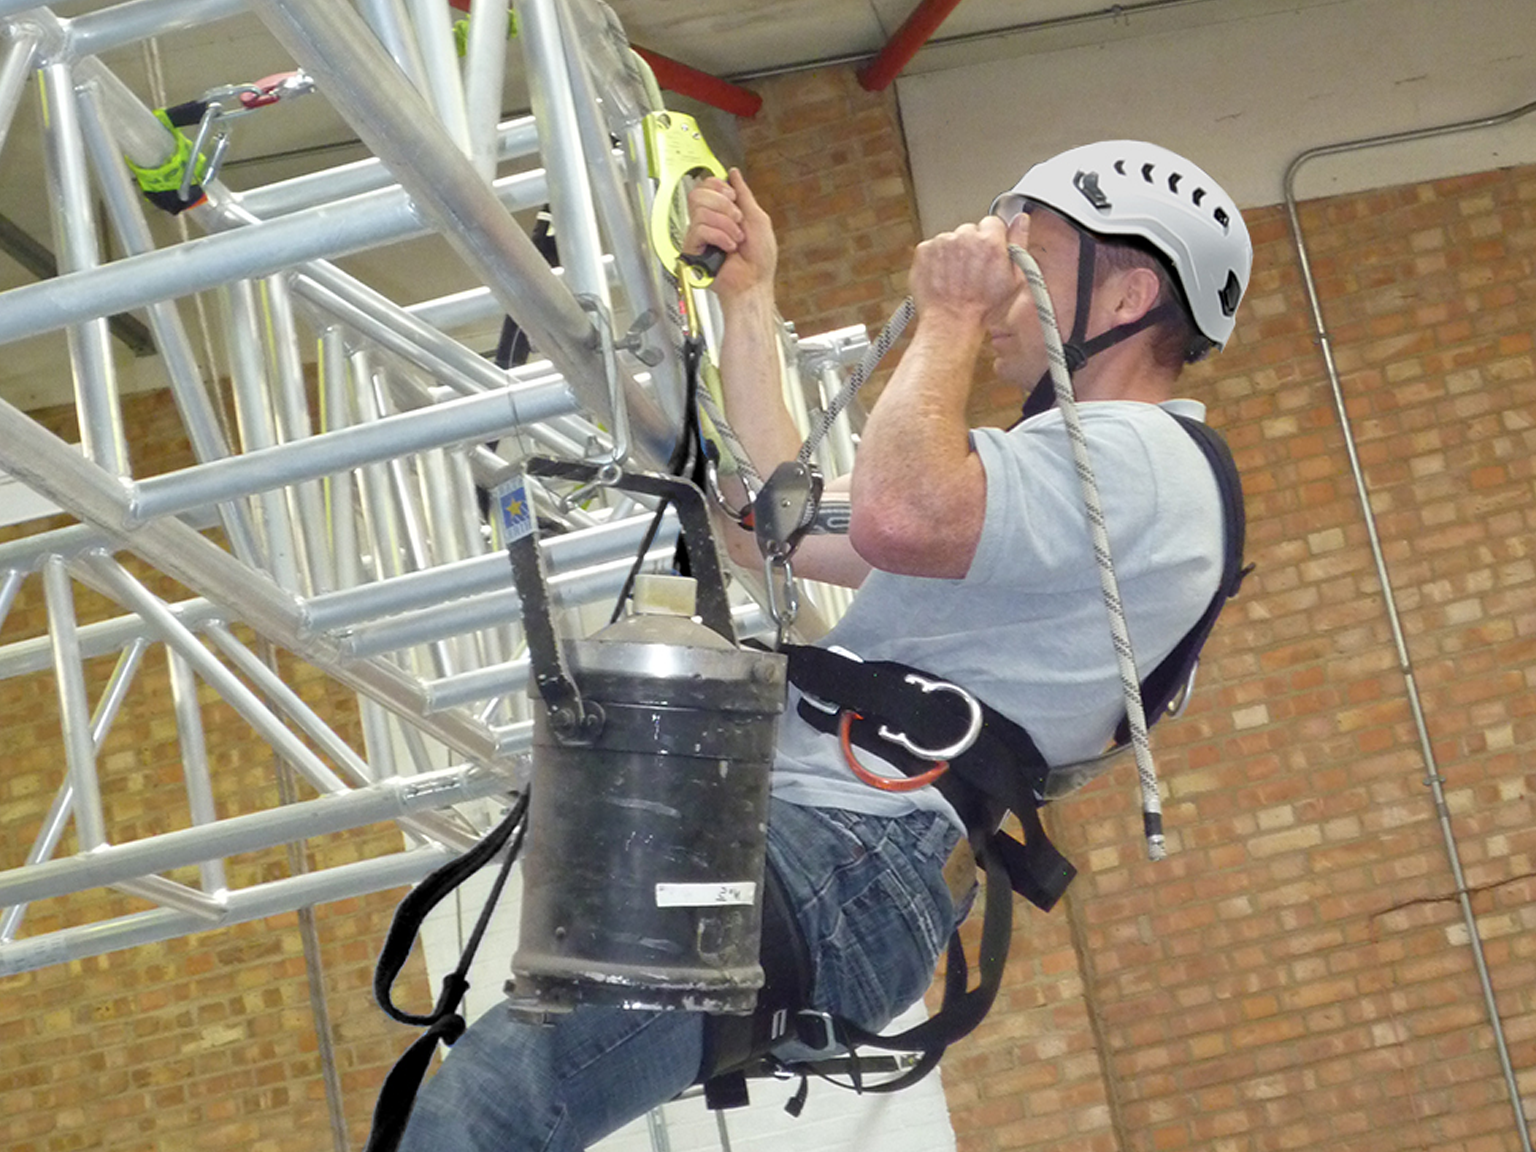 A man installing stage lighting into the ceiling of a theatre